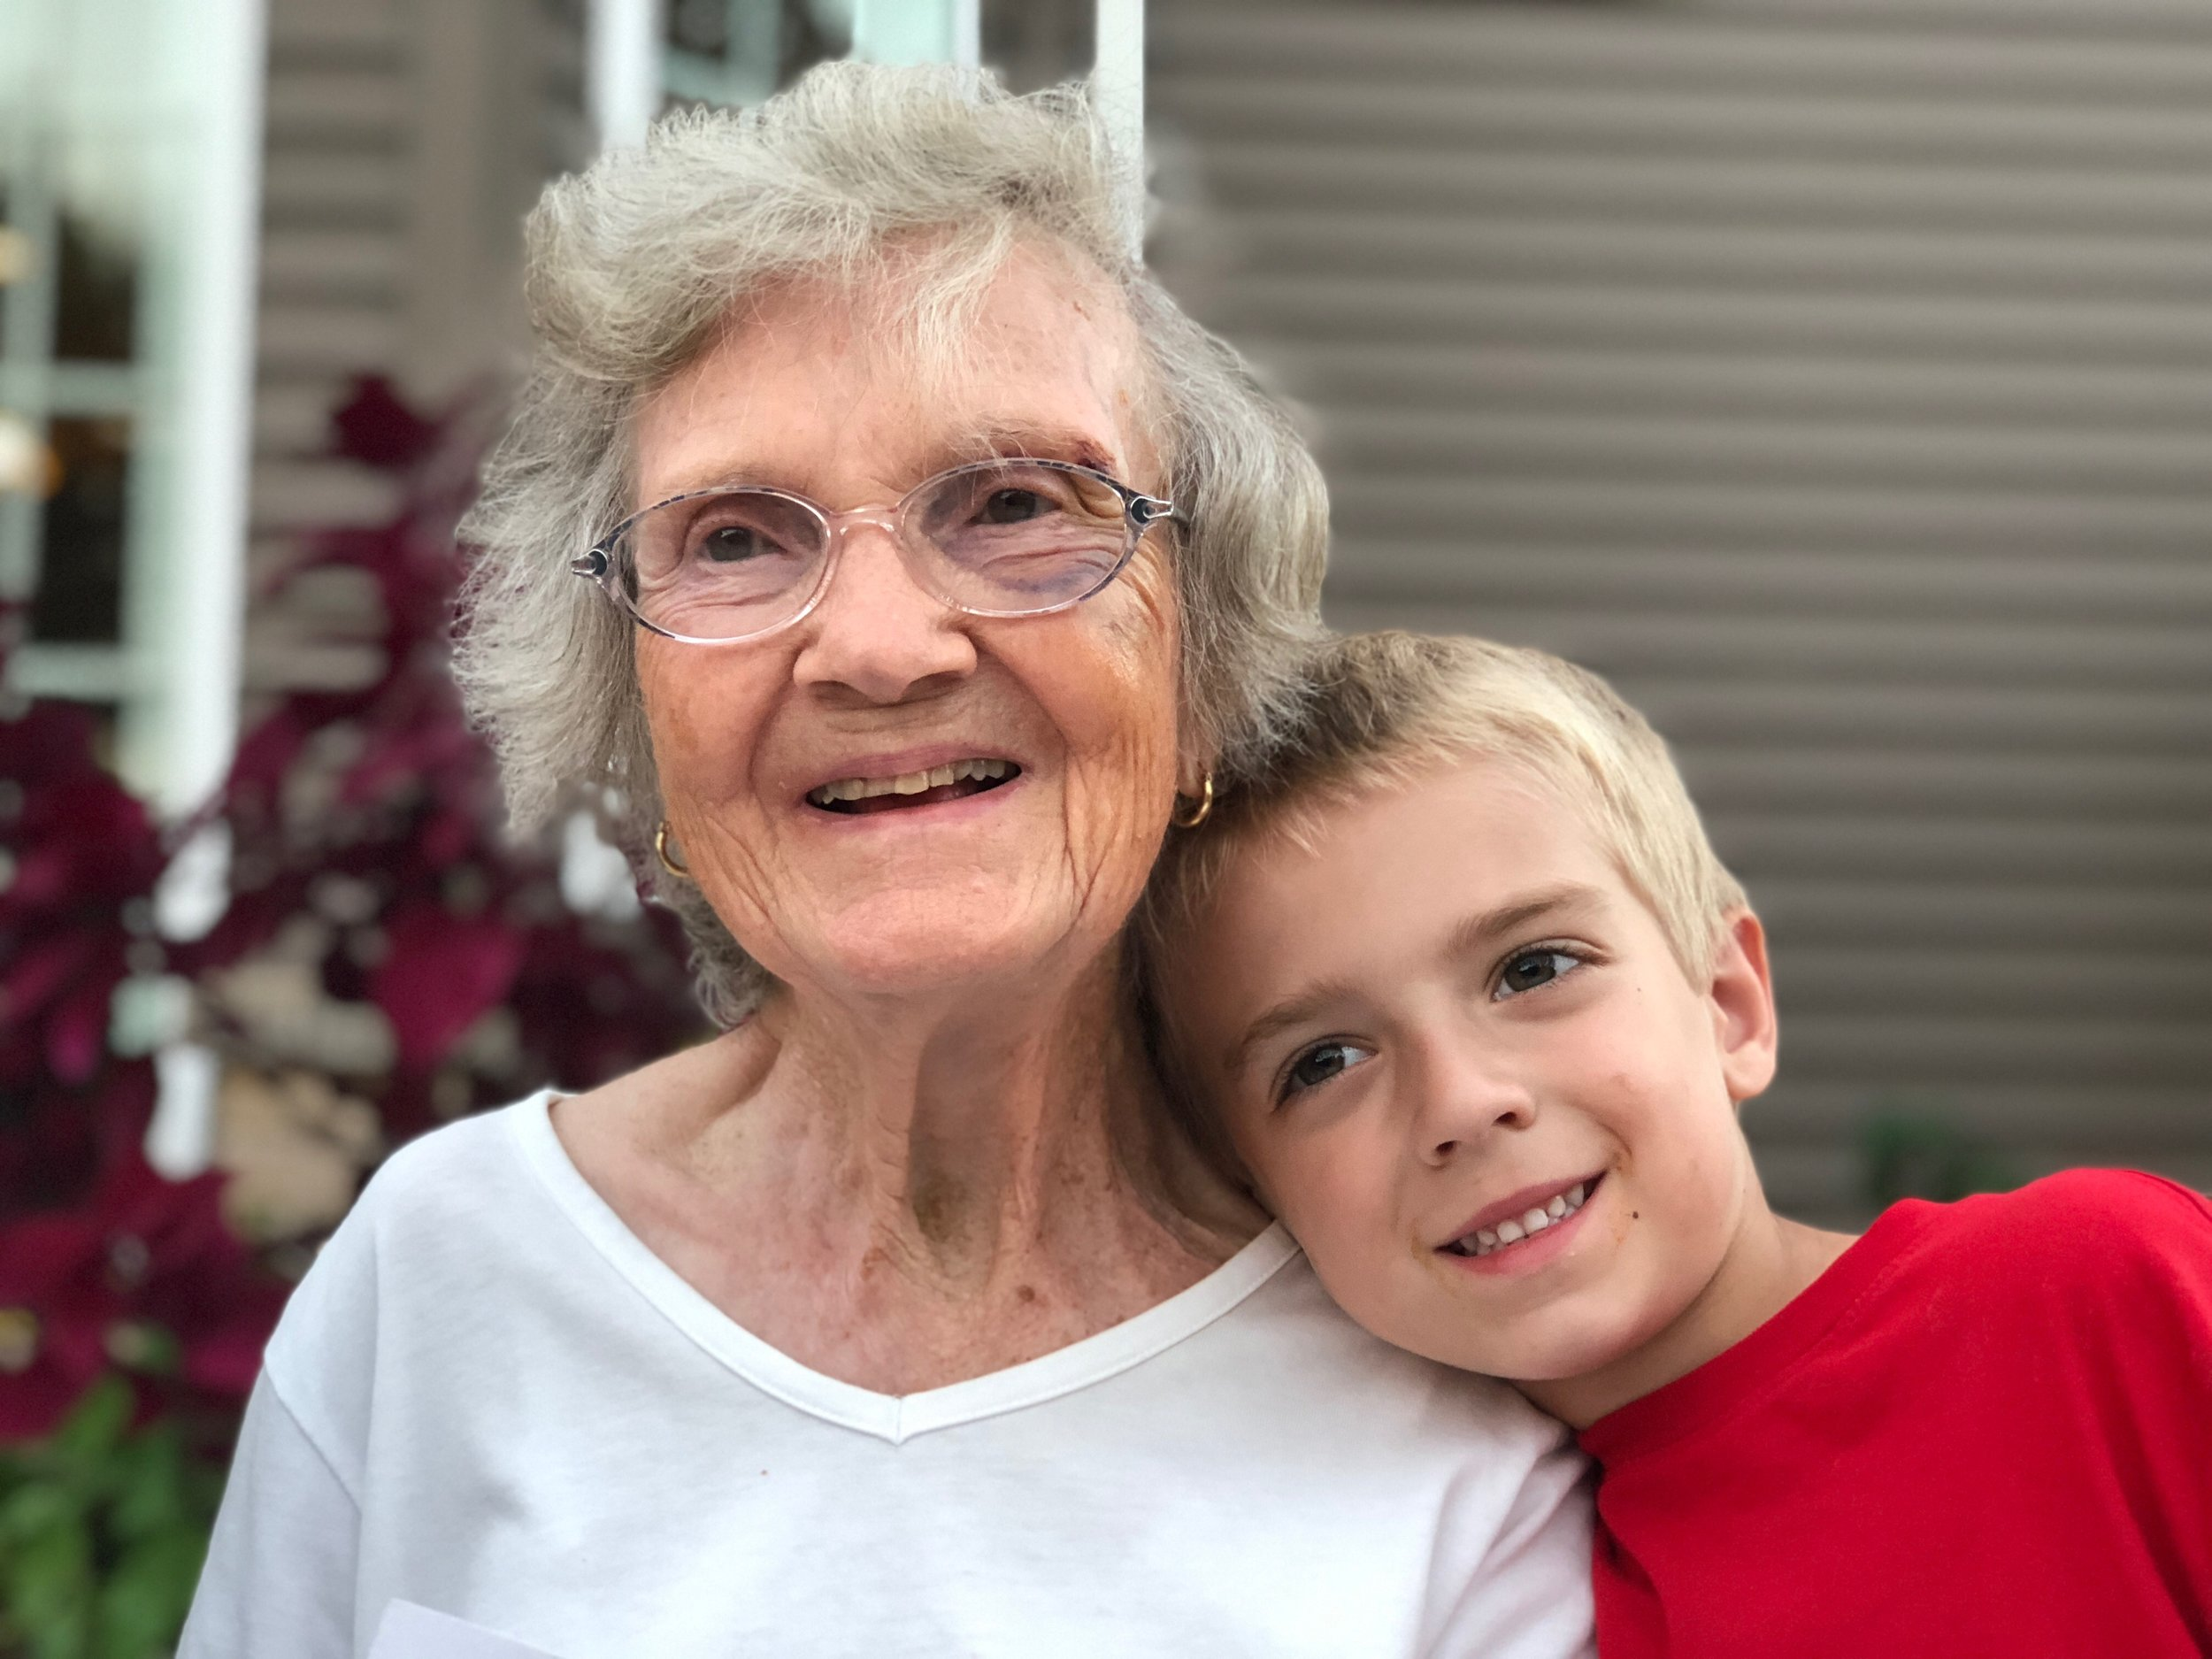 Aunt Ethel in 2018 on her 90th birthday with our son Zachary